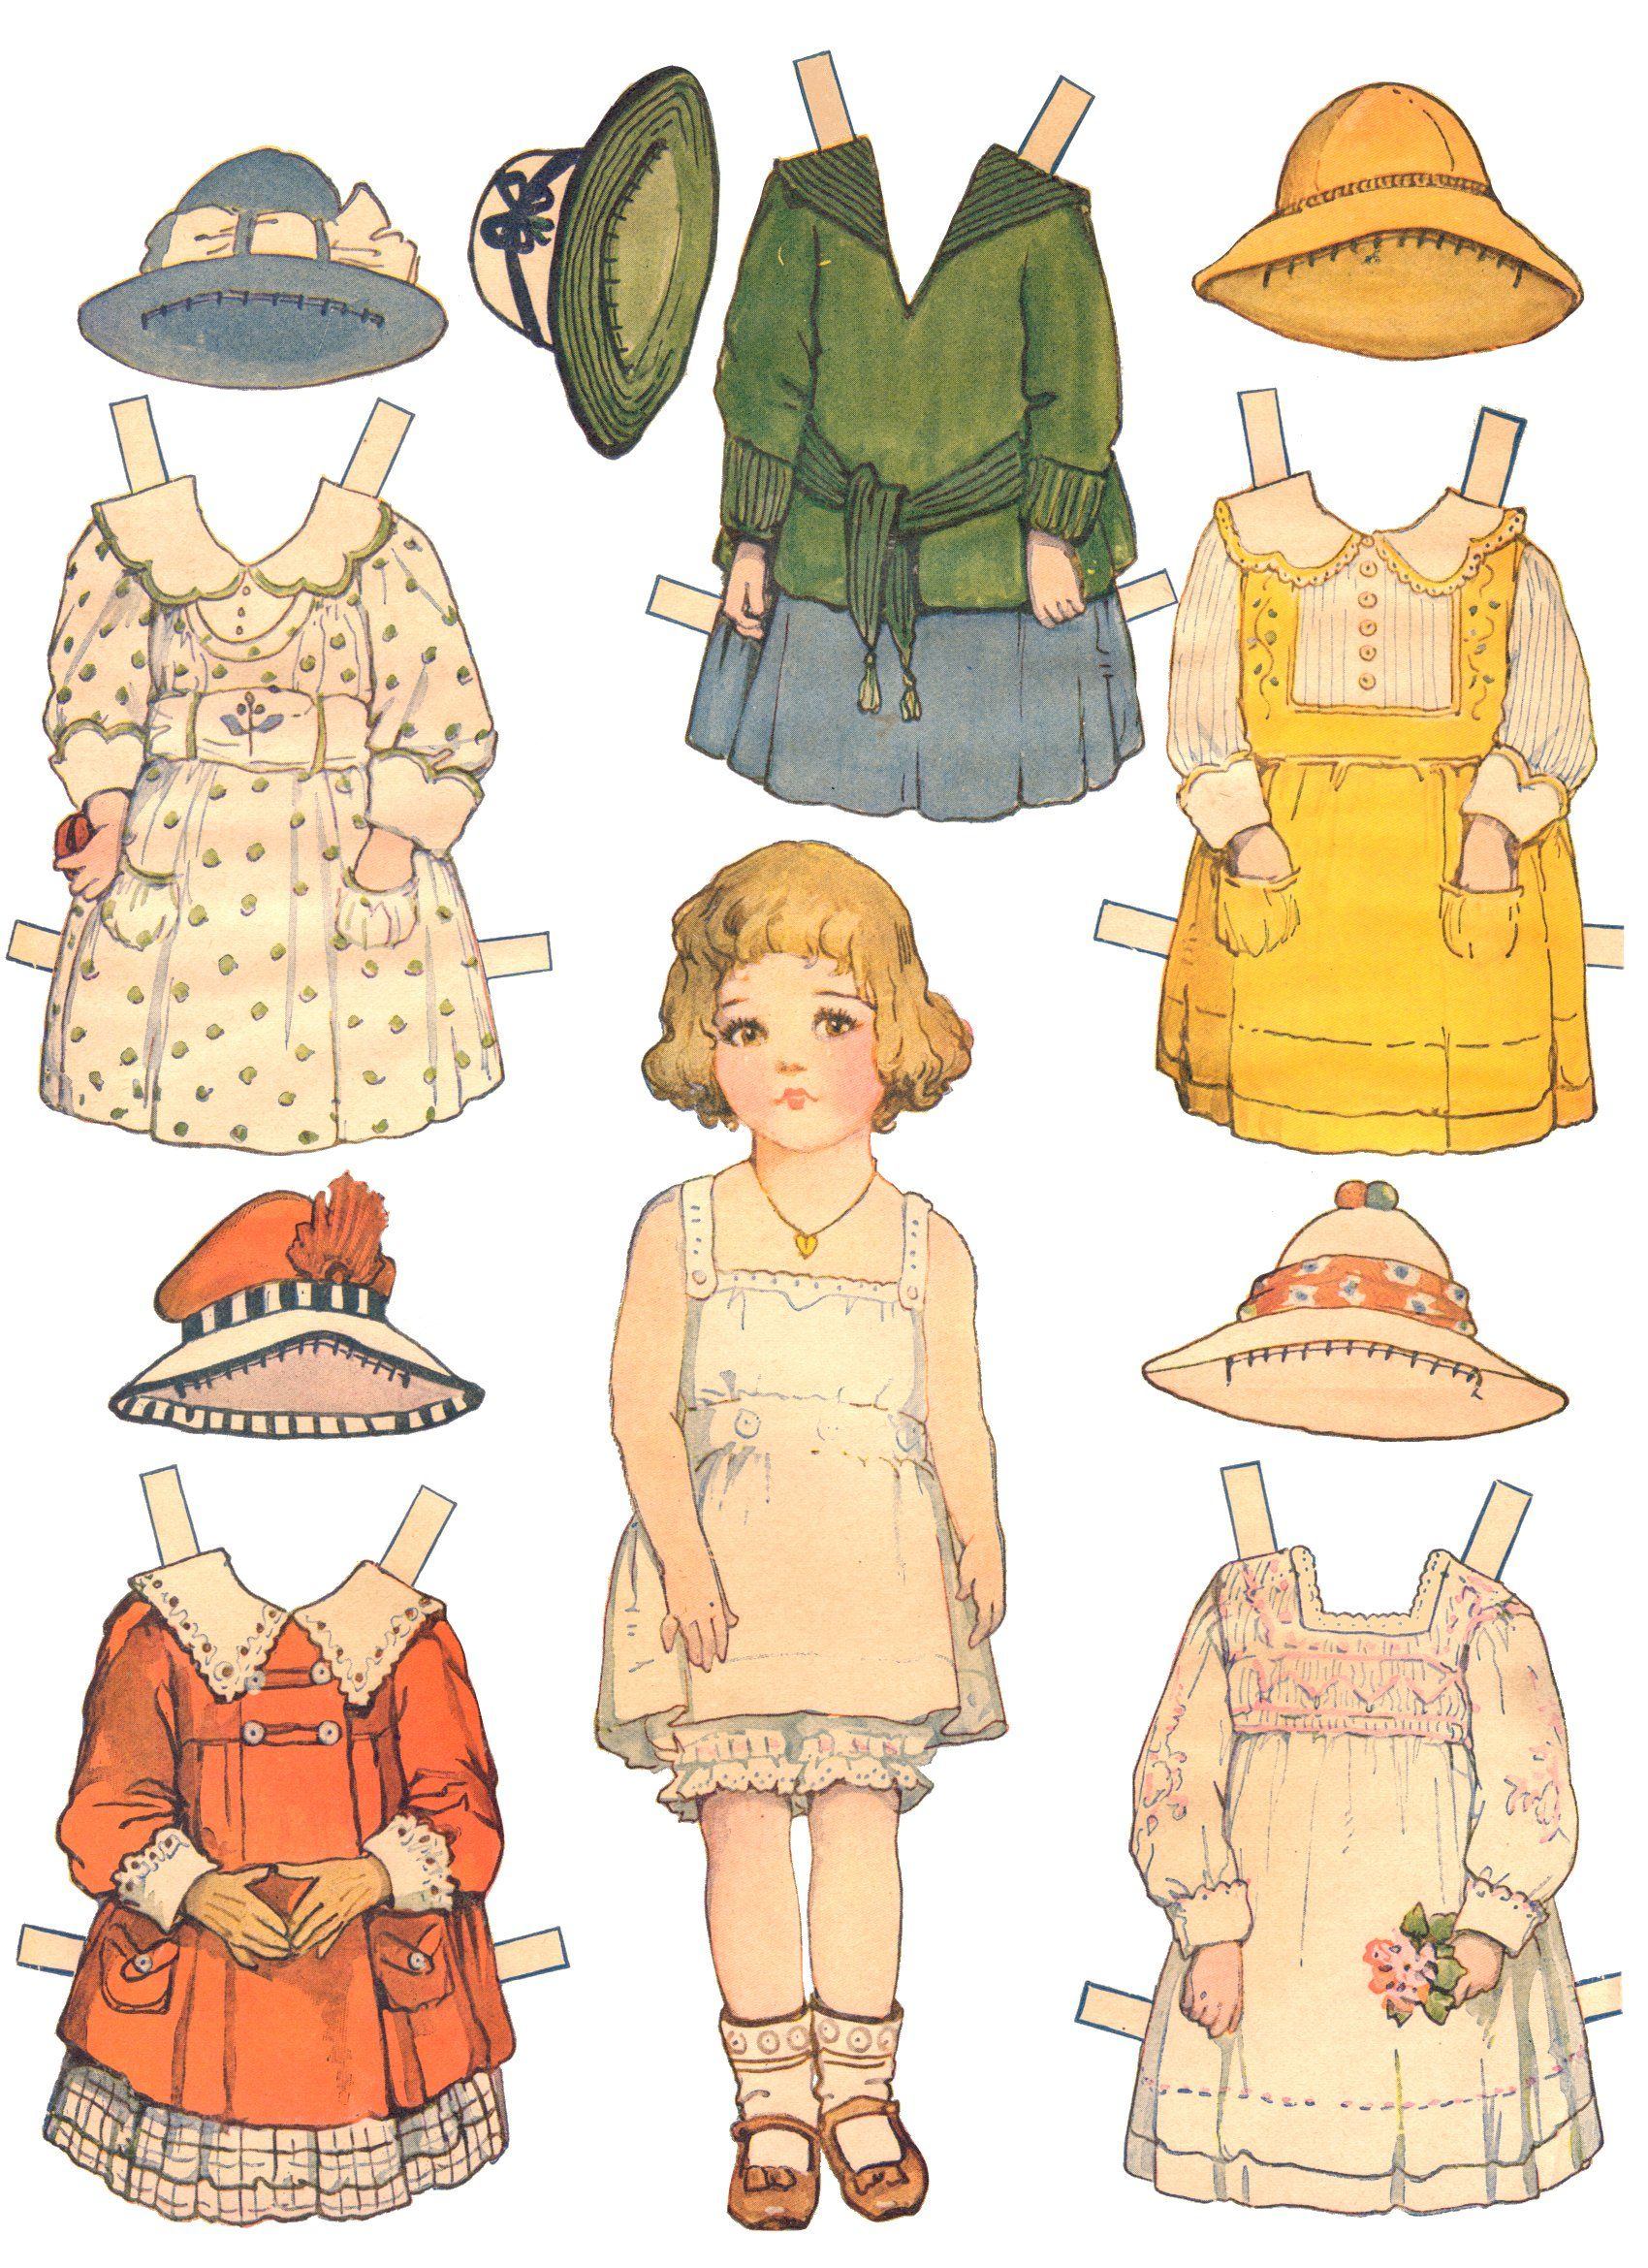 Paper Dolls And Paper Doll Dresses Printable From Kid Fun Vintage Paper Dolls Paper Dolls Paper Dolls Printable